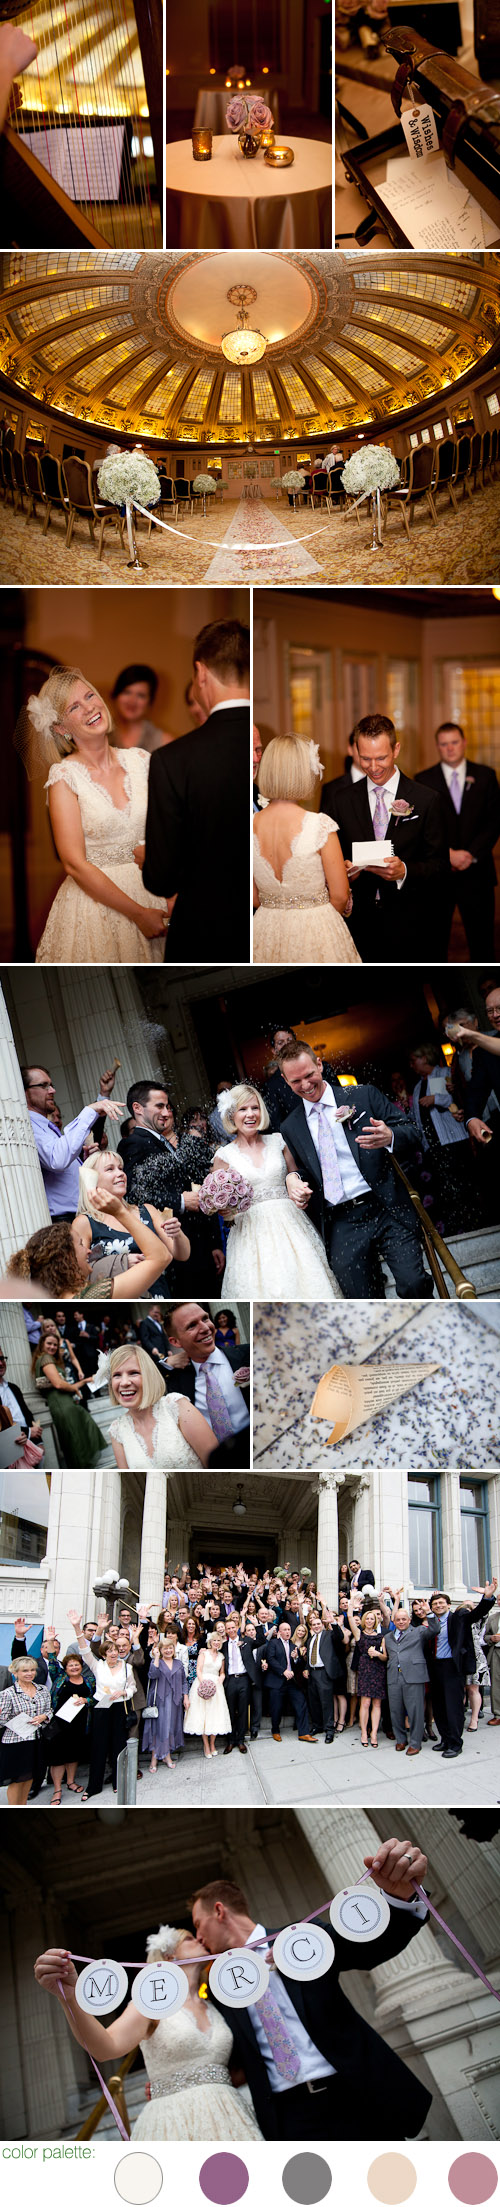 stylish seattle real wedding at the Arctic Club Hotel, photos by Kim and Adam Bamberg of La Vie Photography